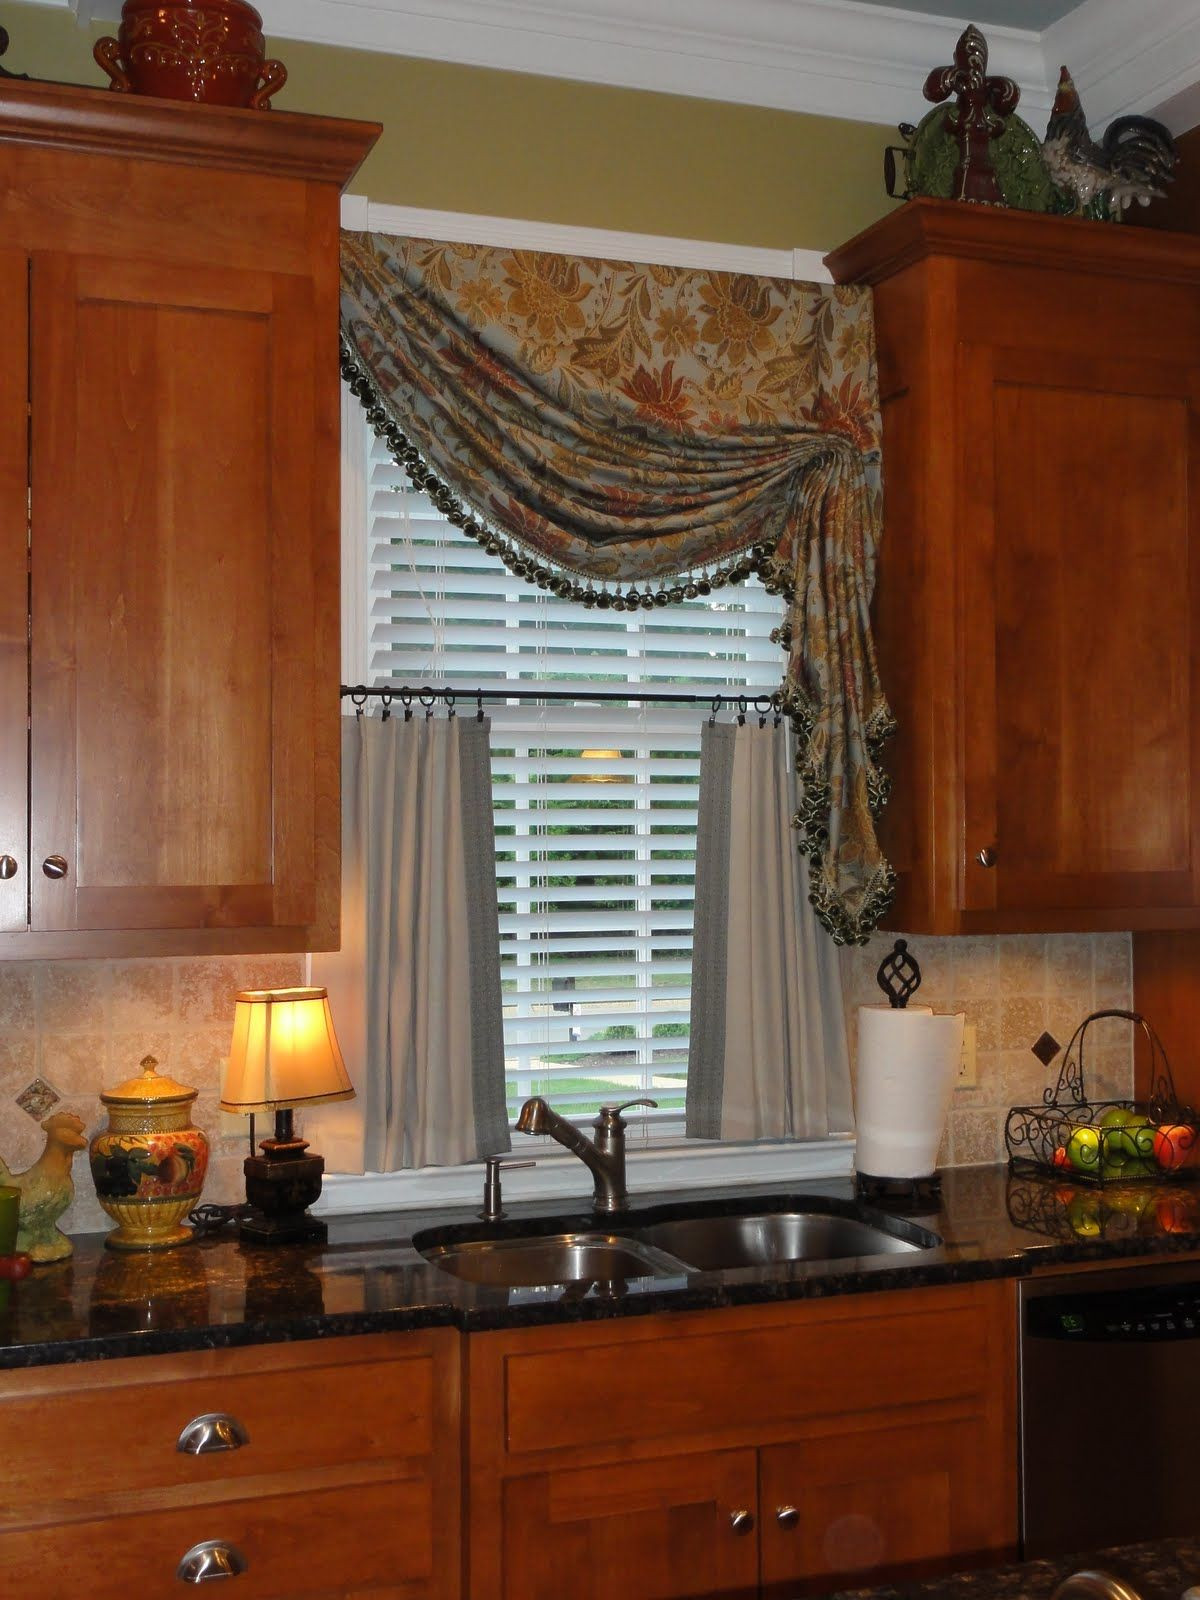 Magnificient Options for Curtains A Bunch Of Inspiring Kitchen Curtains Ideas for Getting